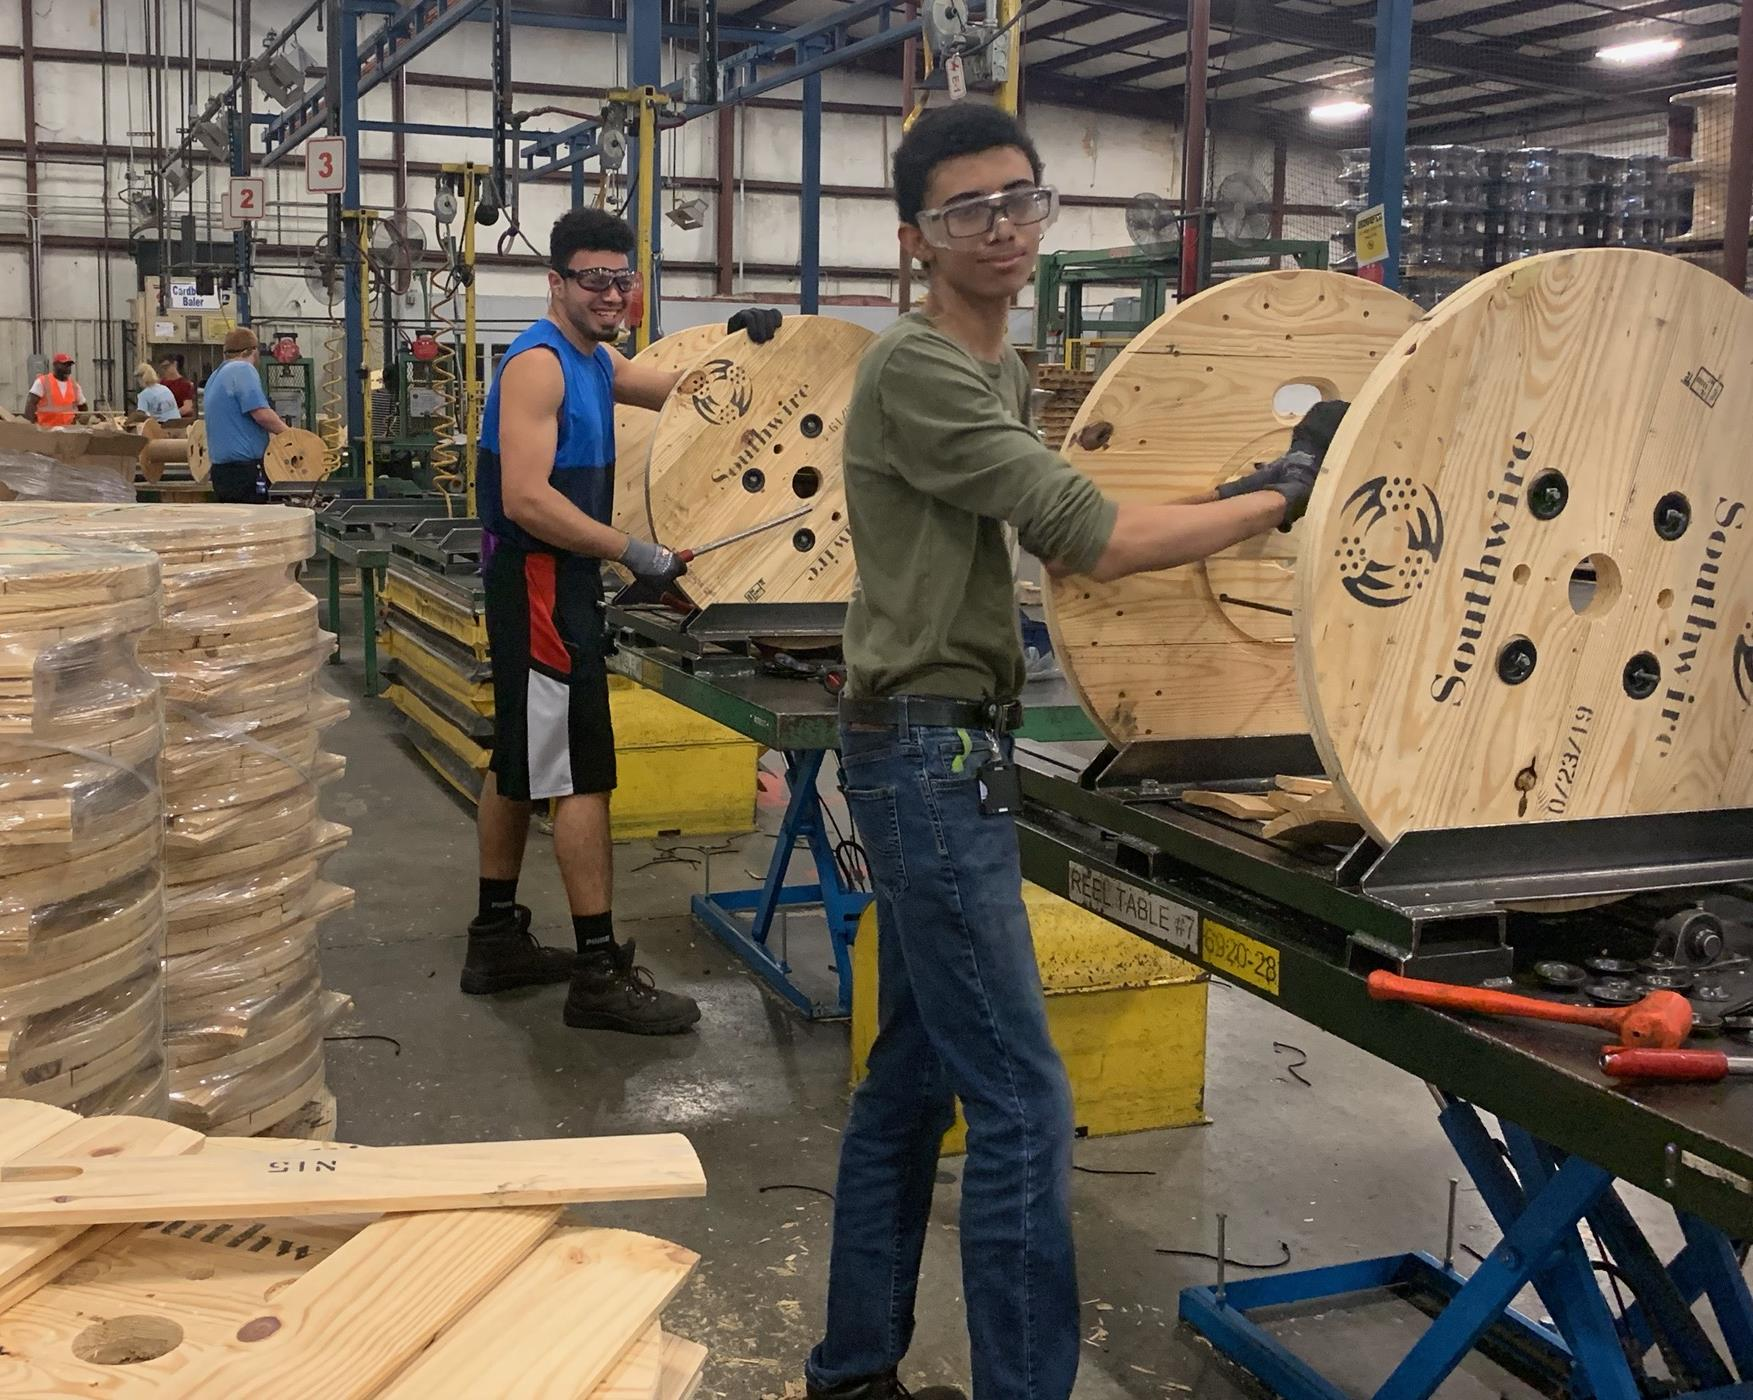 Students build wooden reels that are shipped to other plants for wire spooling